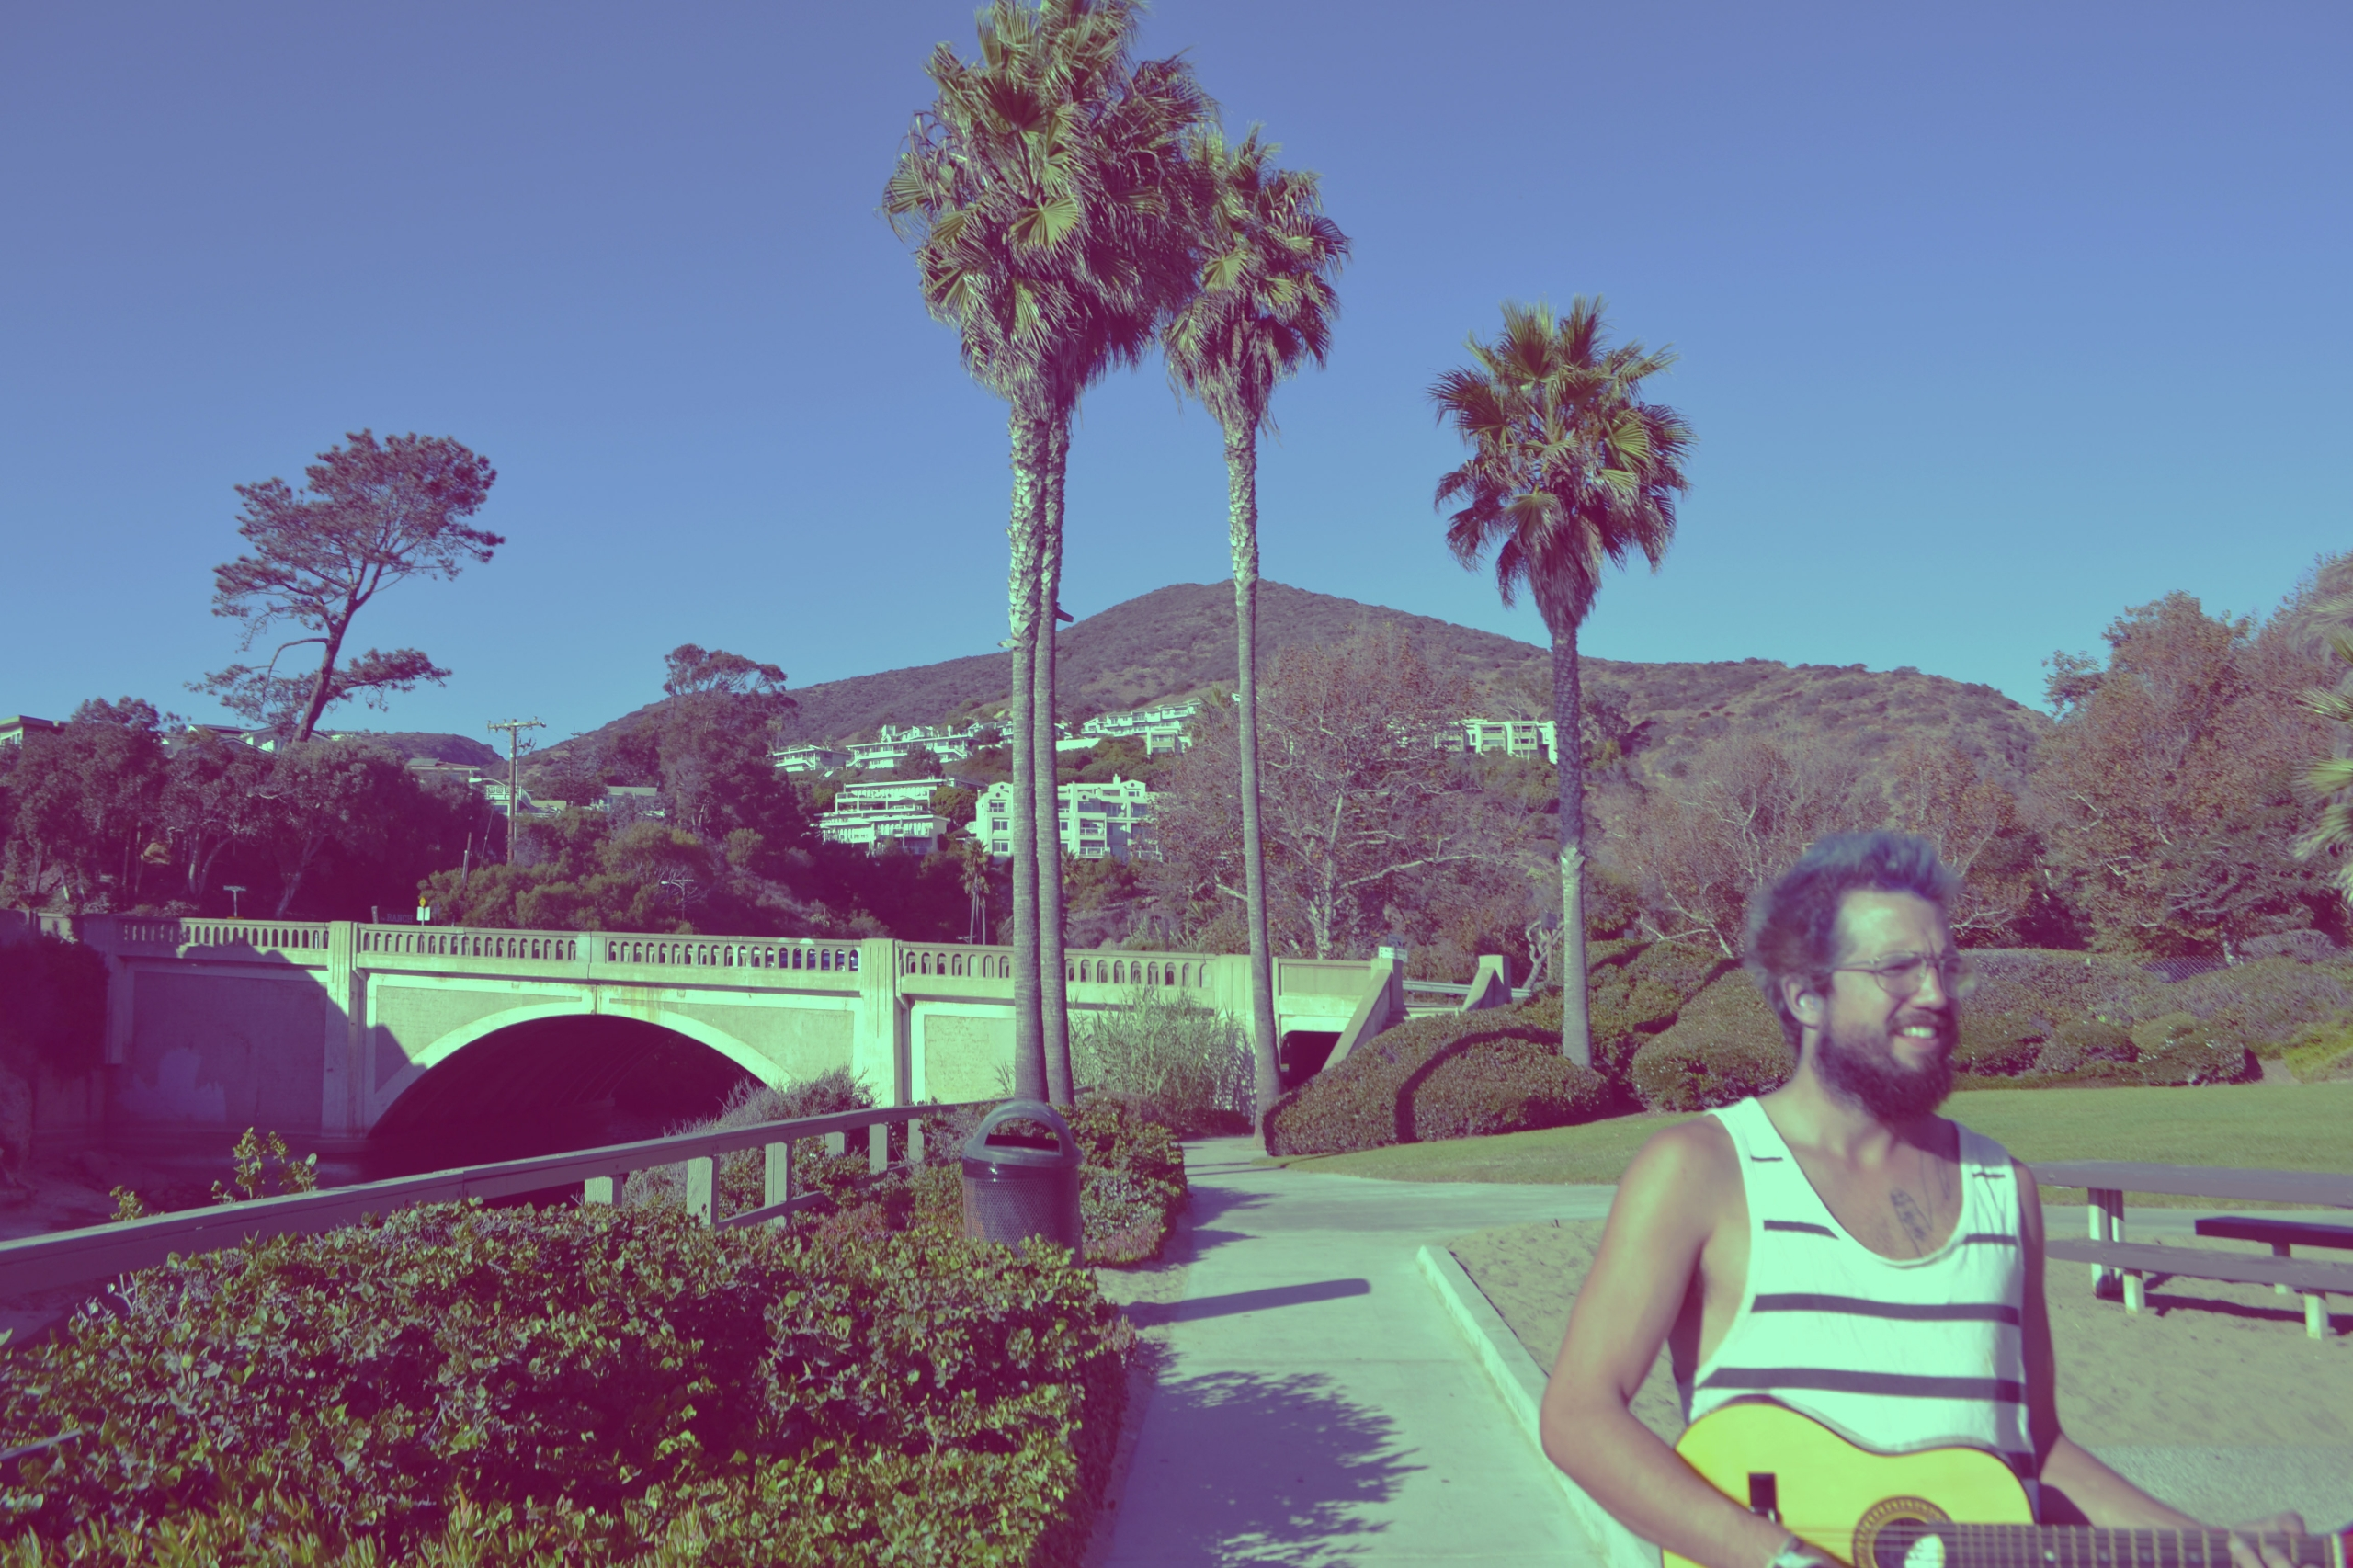 california, artcvlt, photography - leeaux | ello